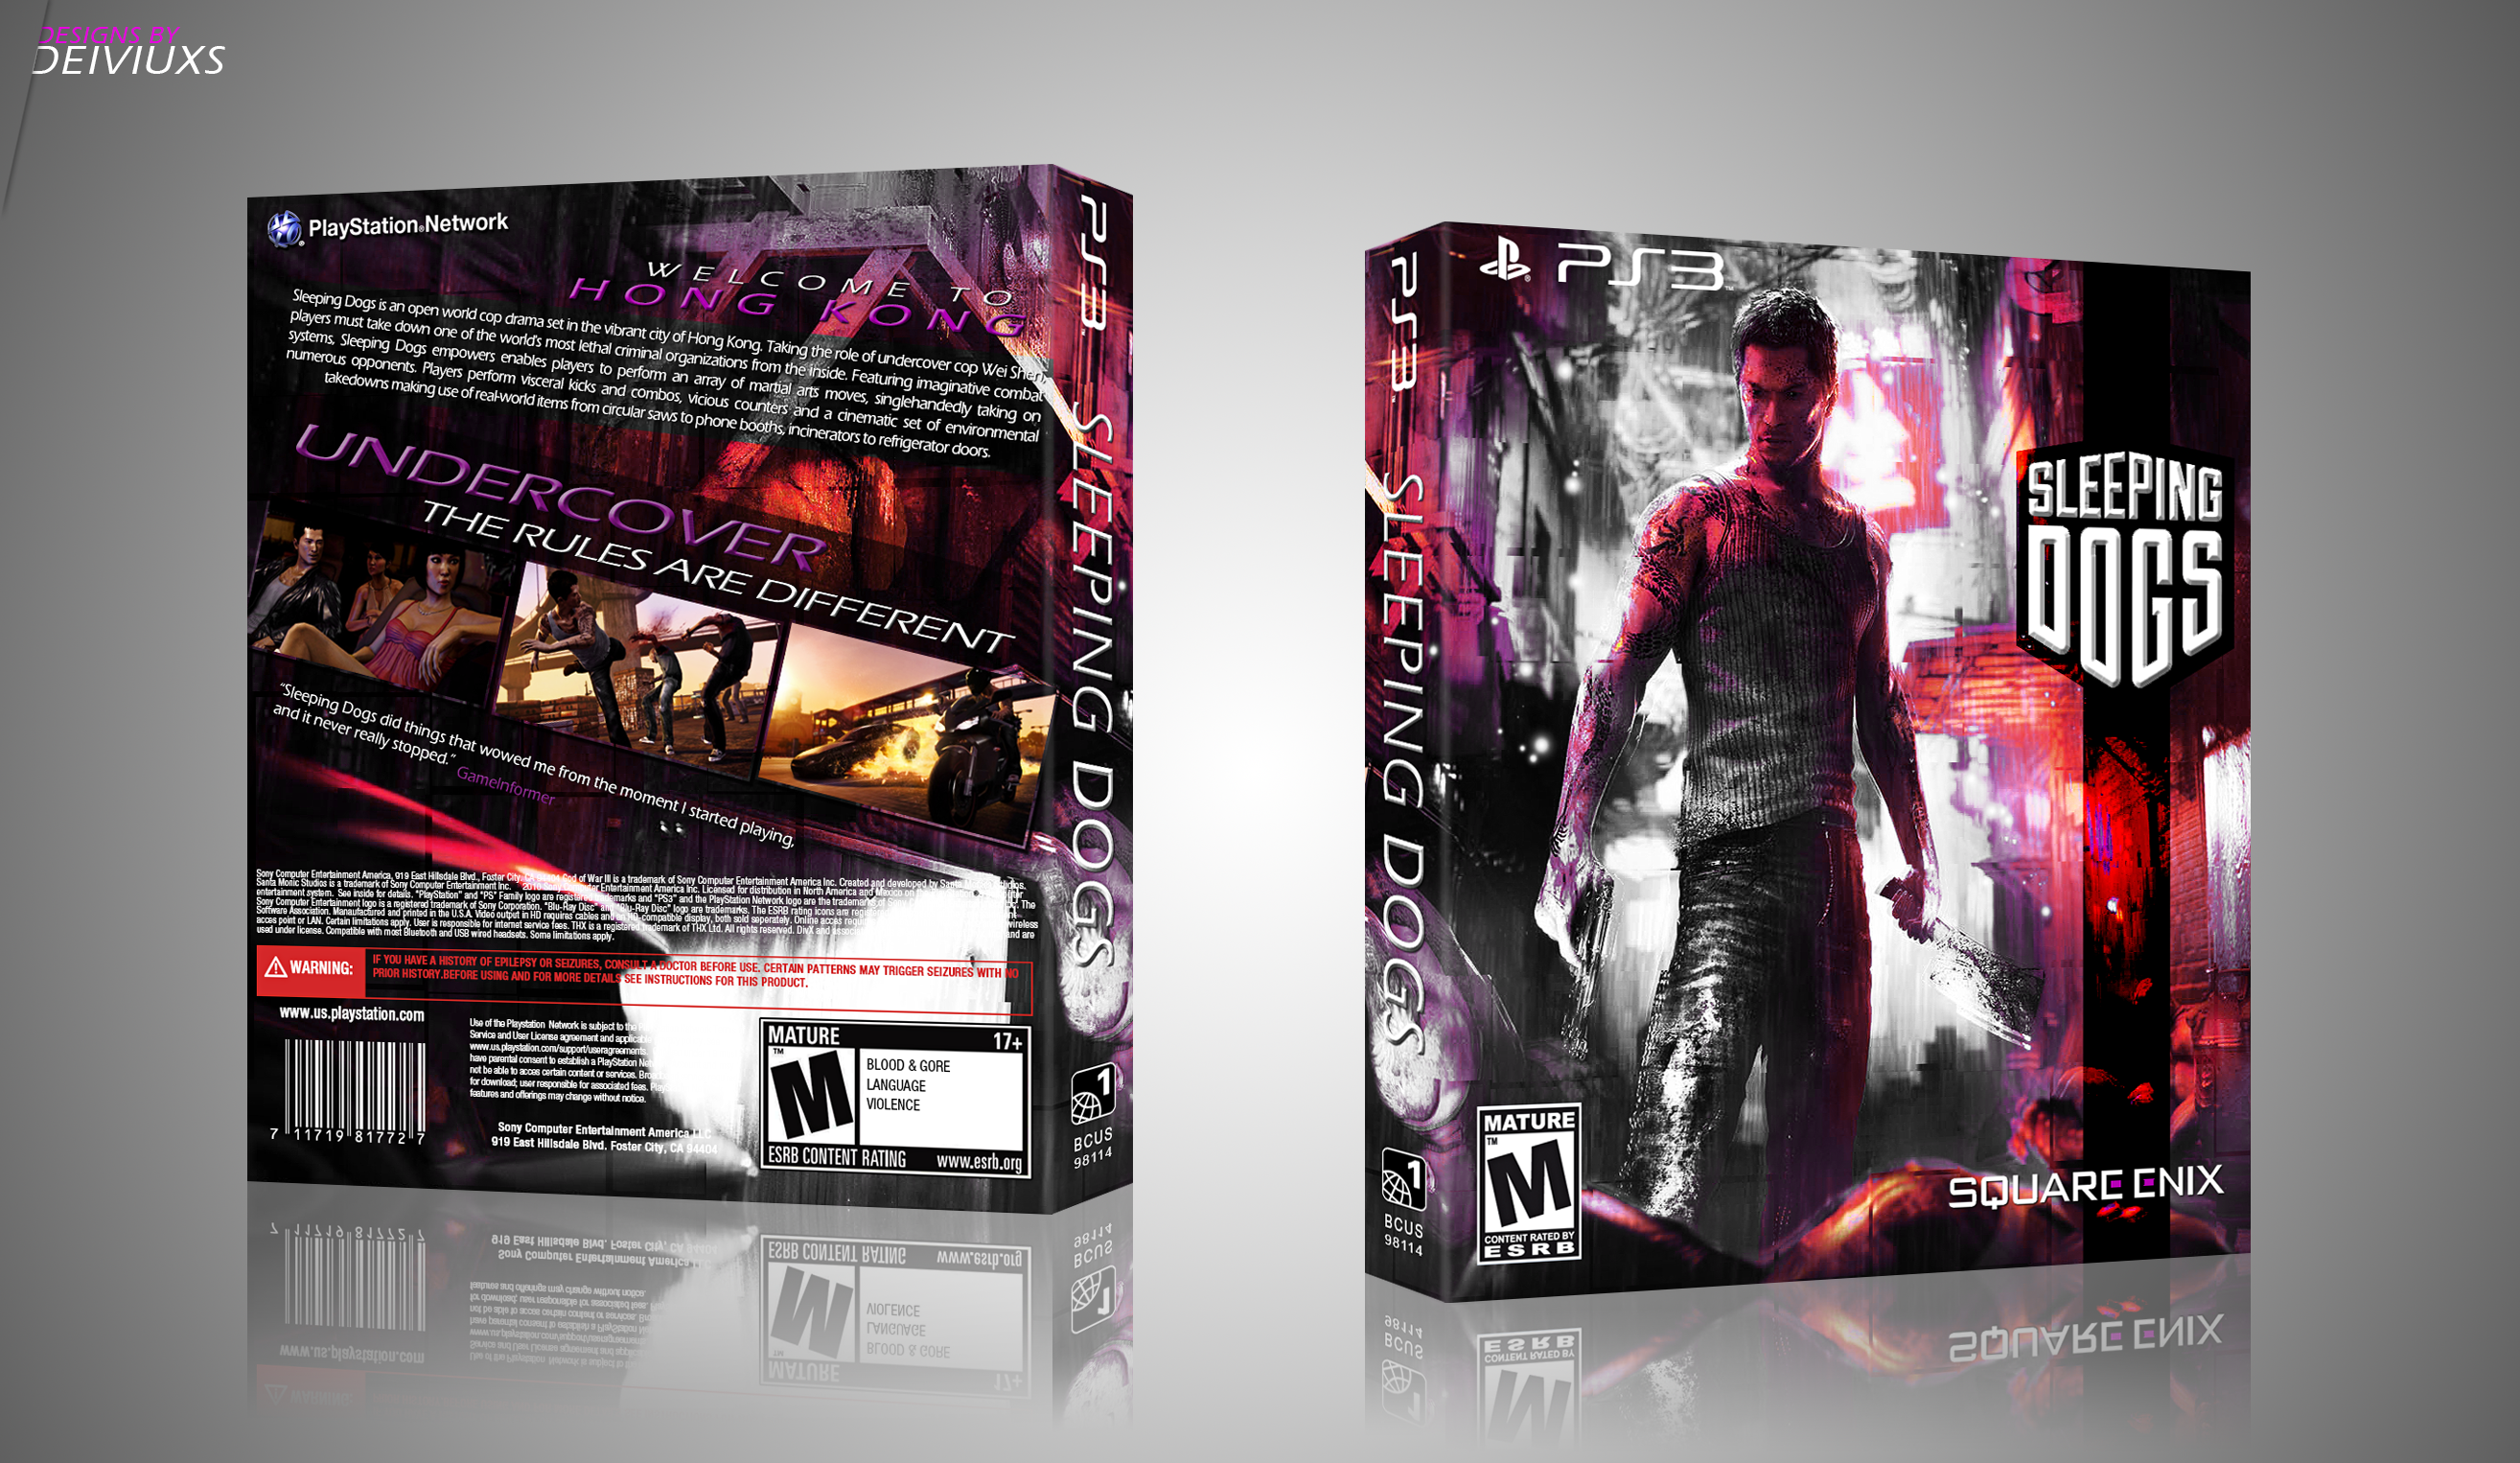 Sleeping Dogs box cover